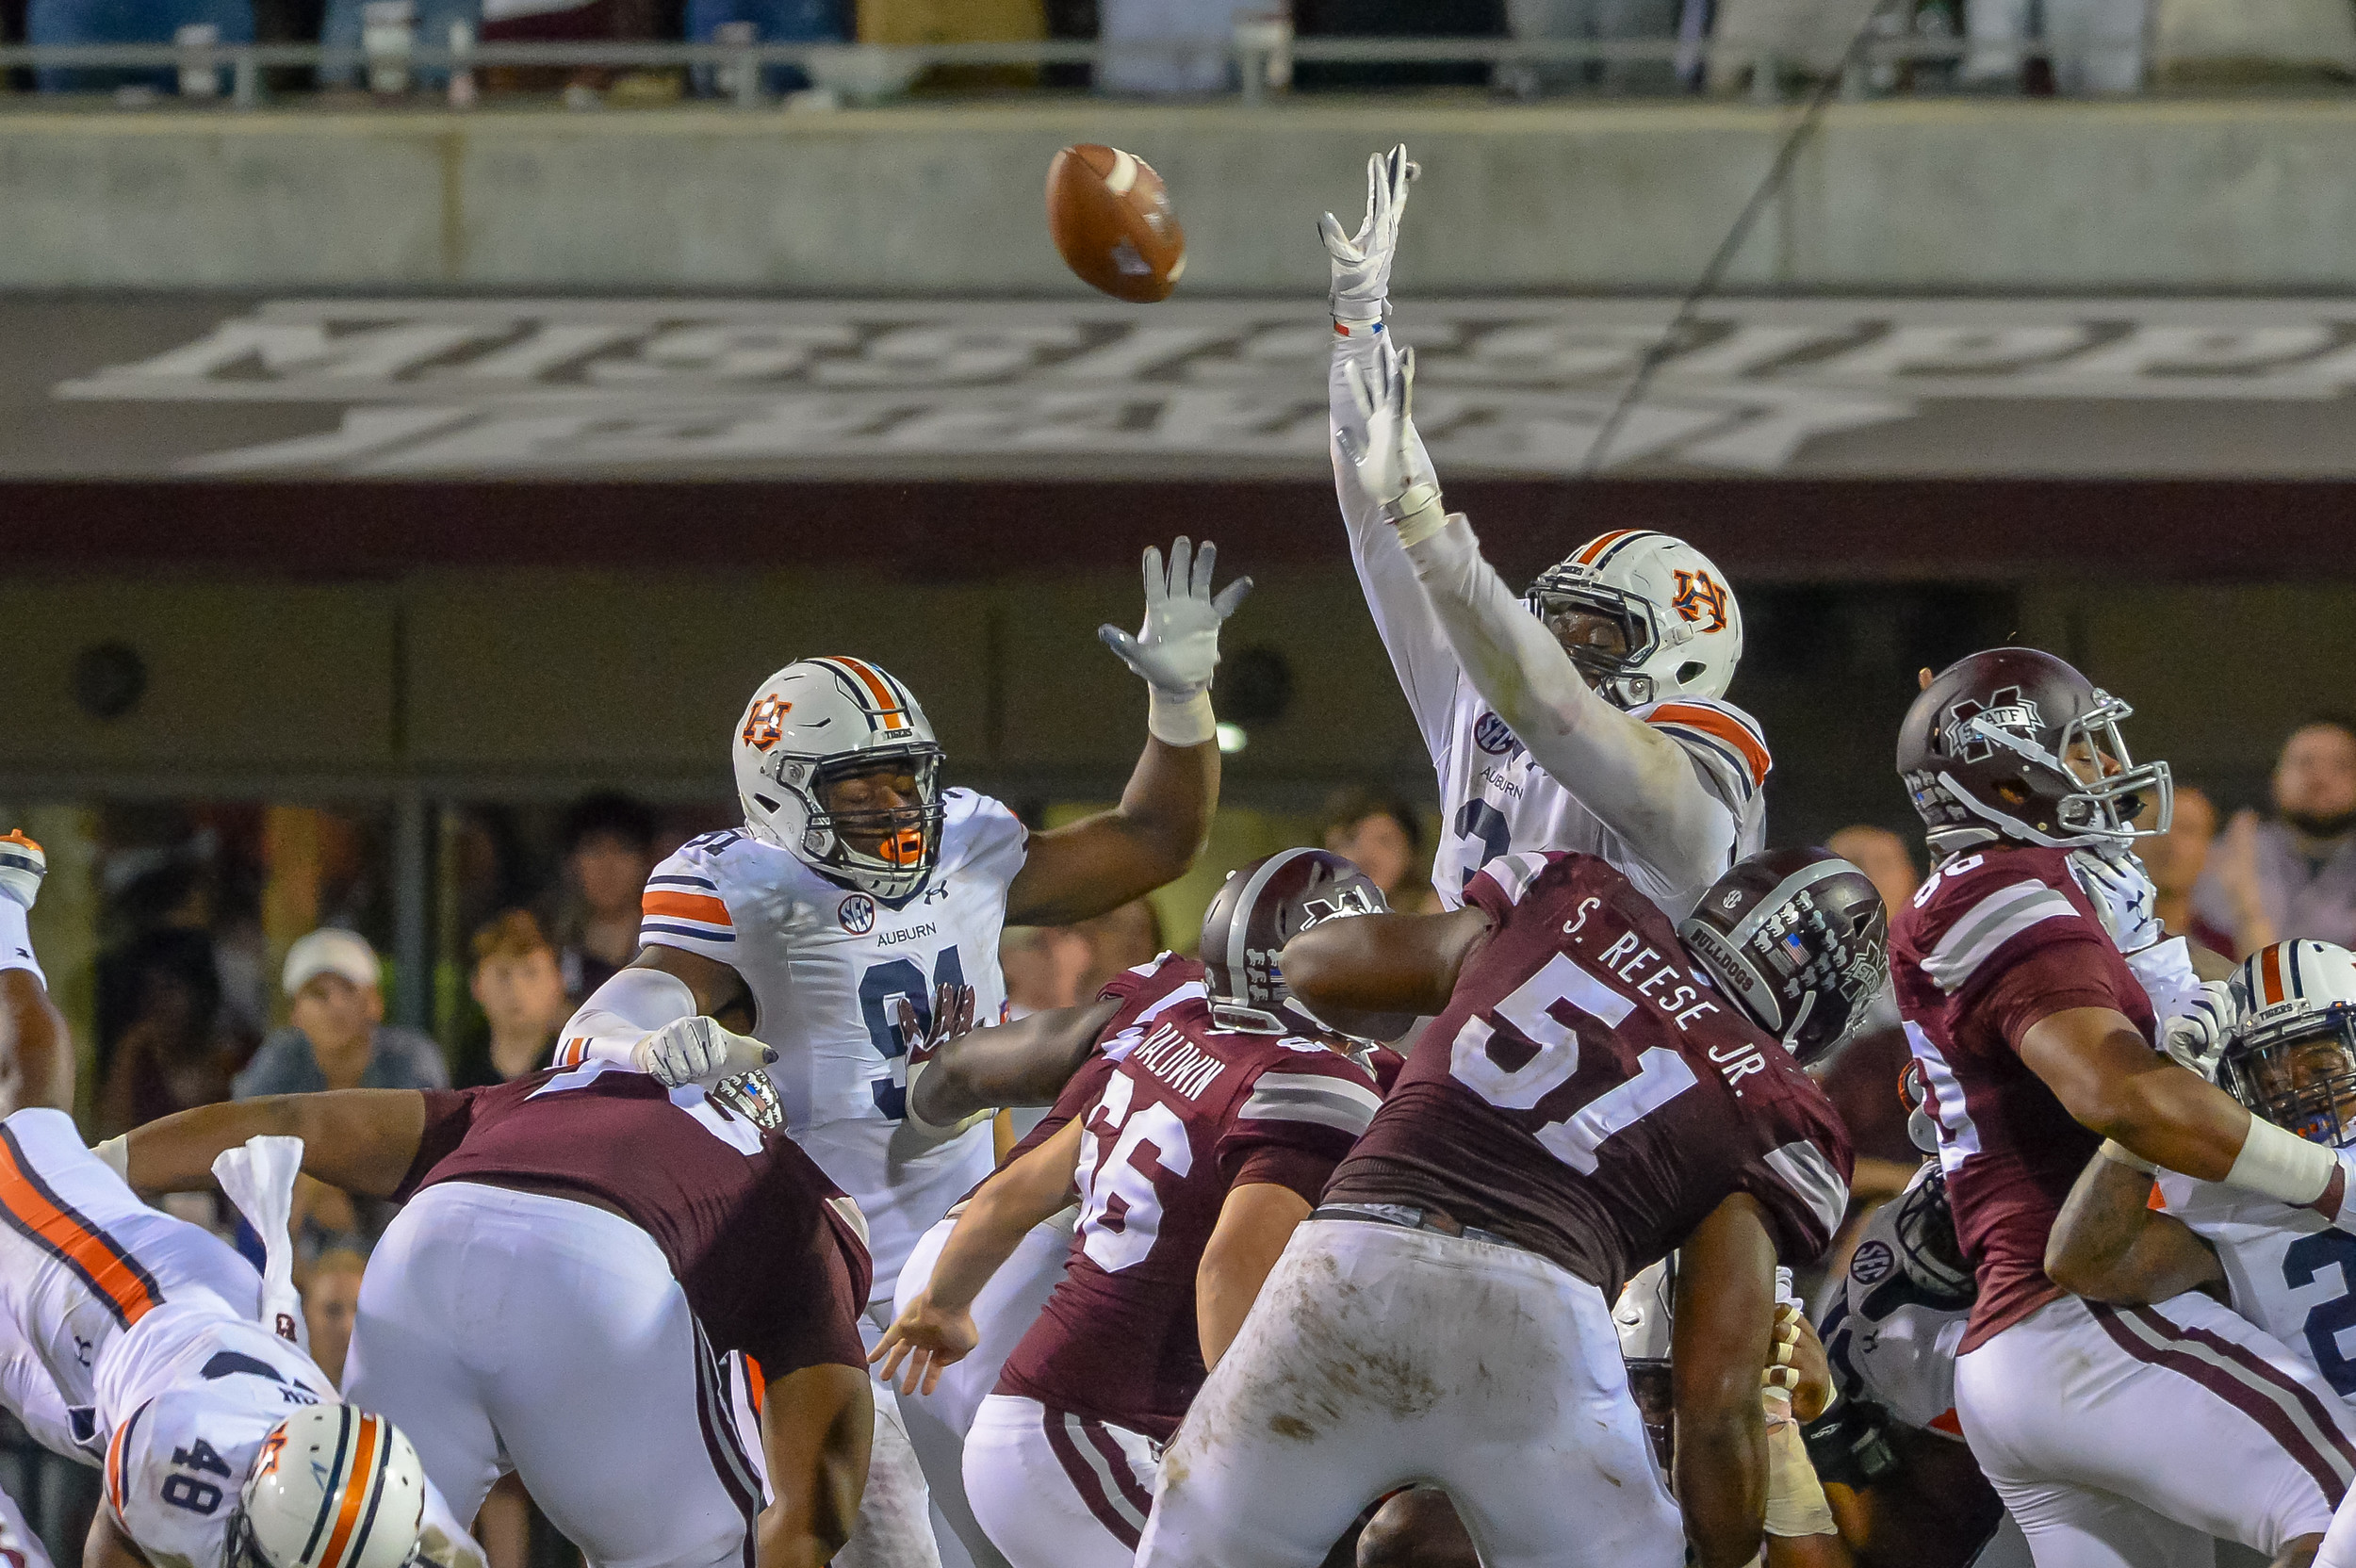 Auburn Tigers defensive lineman Marlon Davidson (3) blocks a field goal attempt during the second half of Saturday's game, at Davis Wade Stadium in Starkville, MS. Daily Mountain Eagle -  Jeff Johnsey